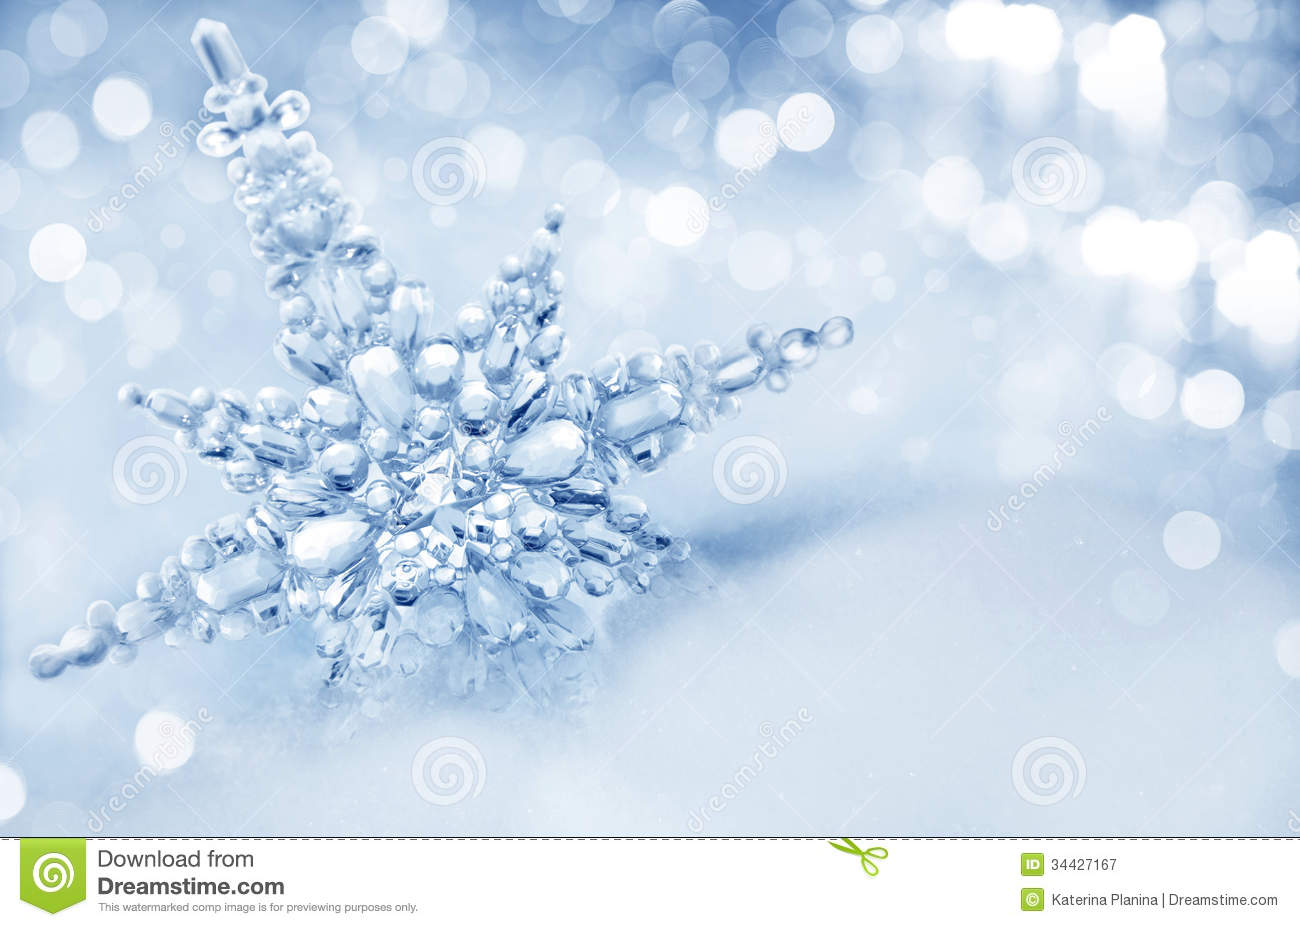 real snowflakes background - photo #22